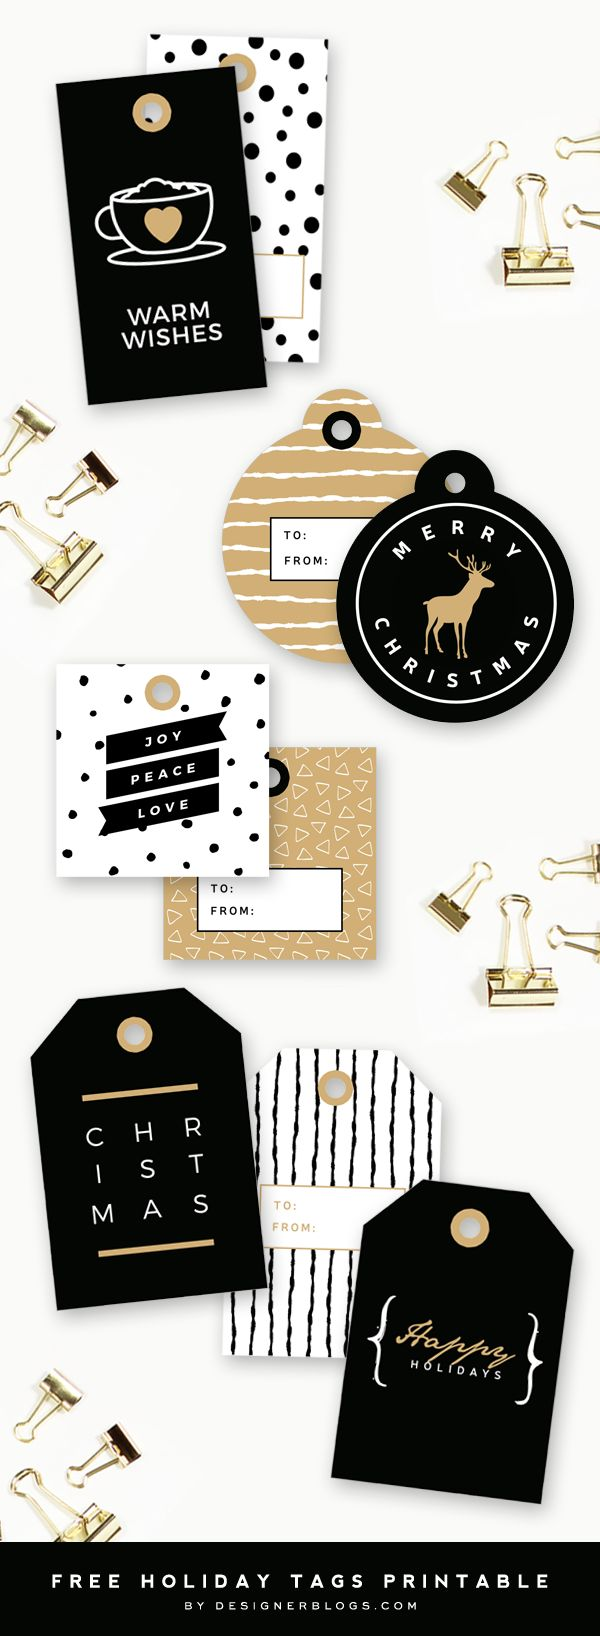 Die gestreiften selber machen, Ext stempeln These Free printable Christmas tags are too cute!!